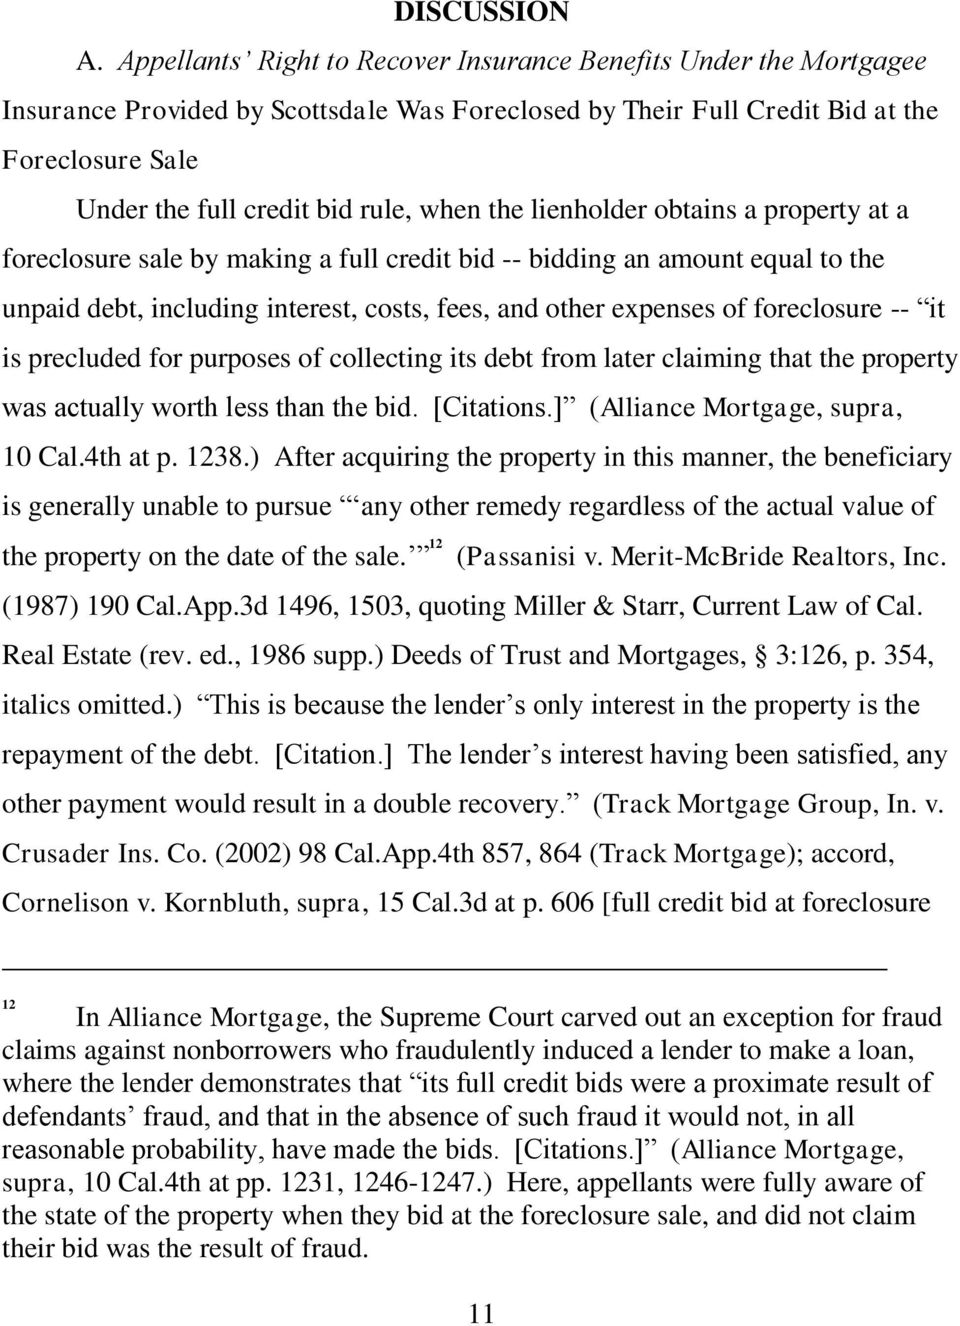 when the lienholder obtains a property at a foreclosure sale by making a full credit bid -- bidding an amount equal to the unpaid debt, including interest, costs, fees, and other expenses of